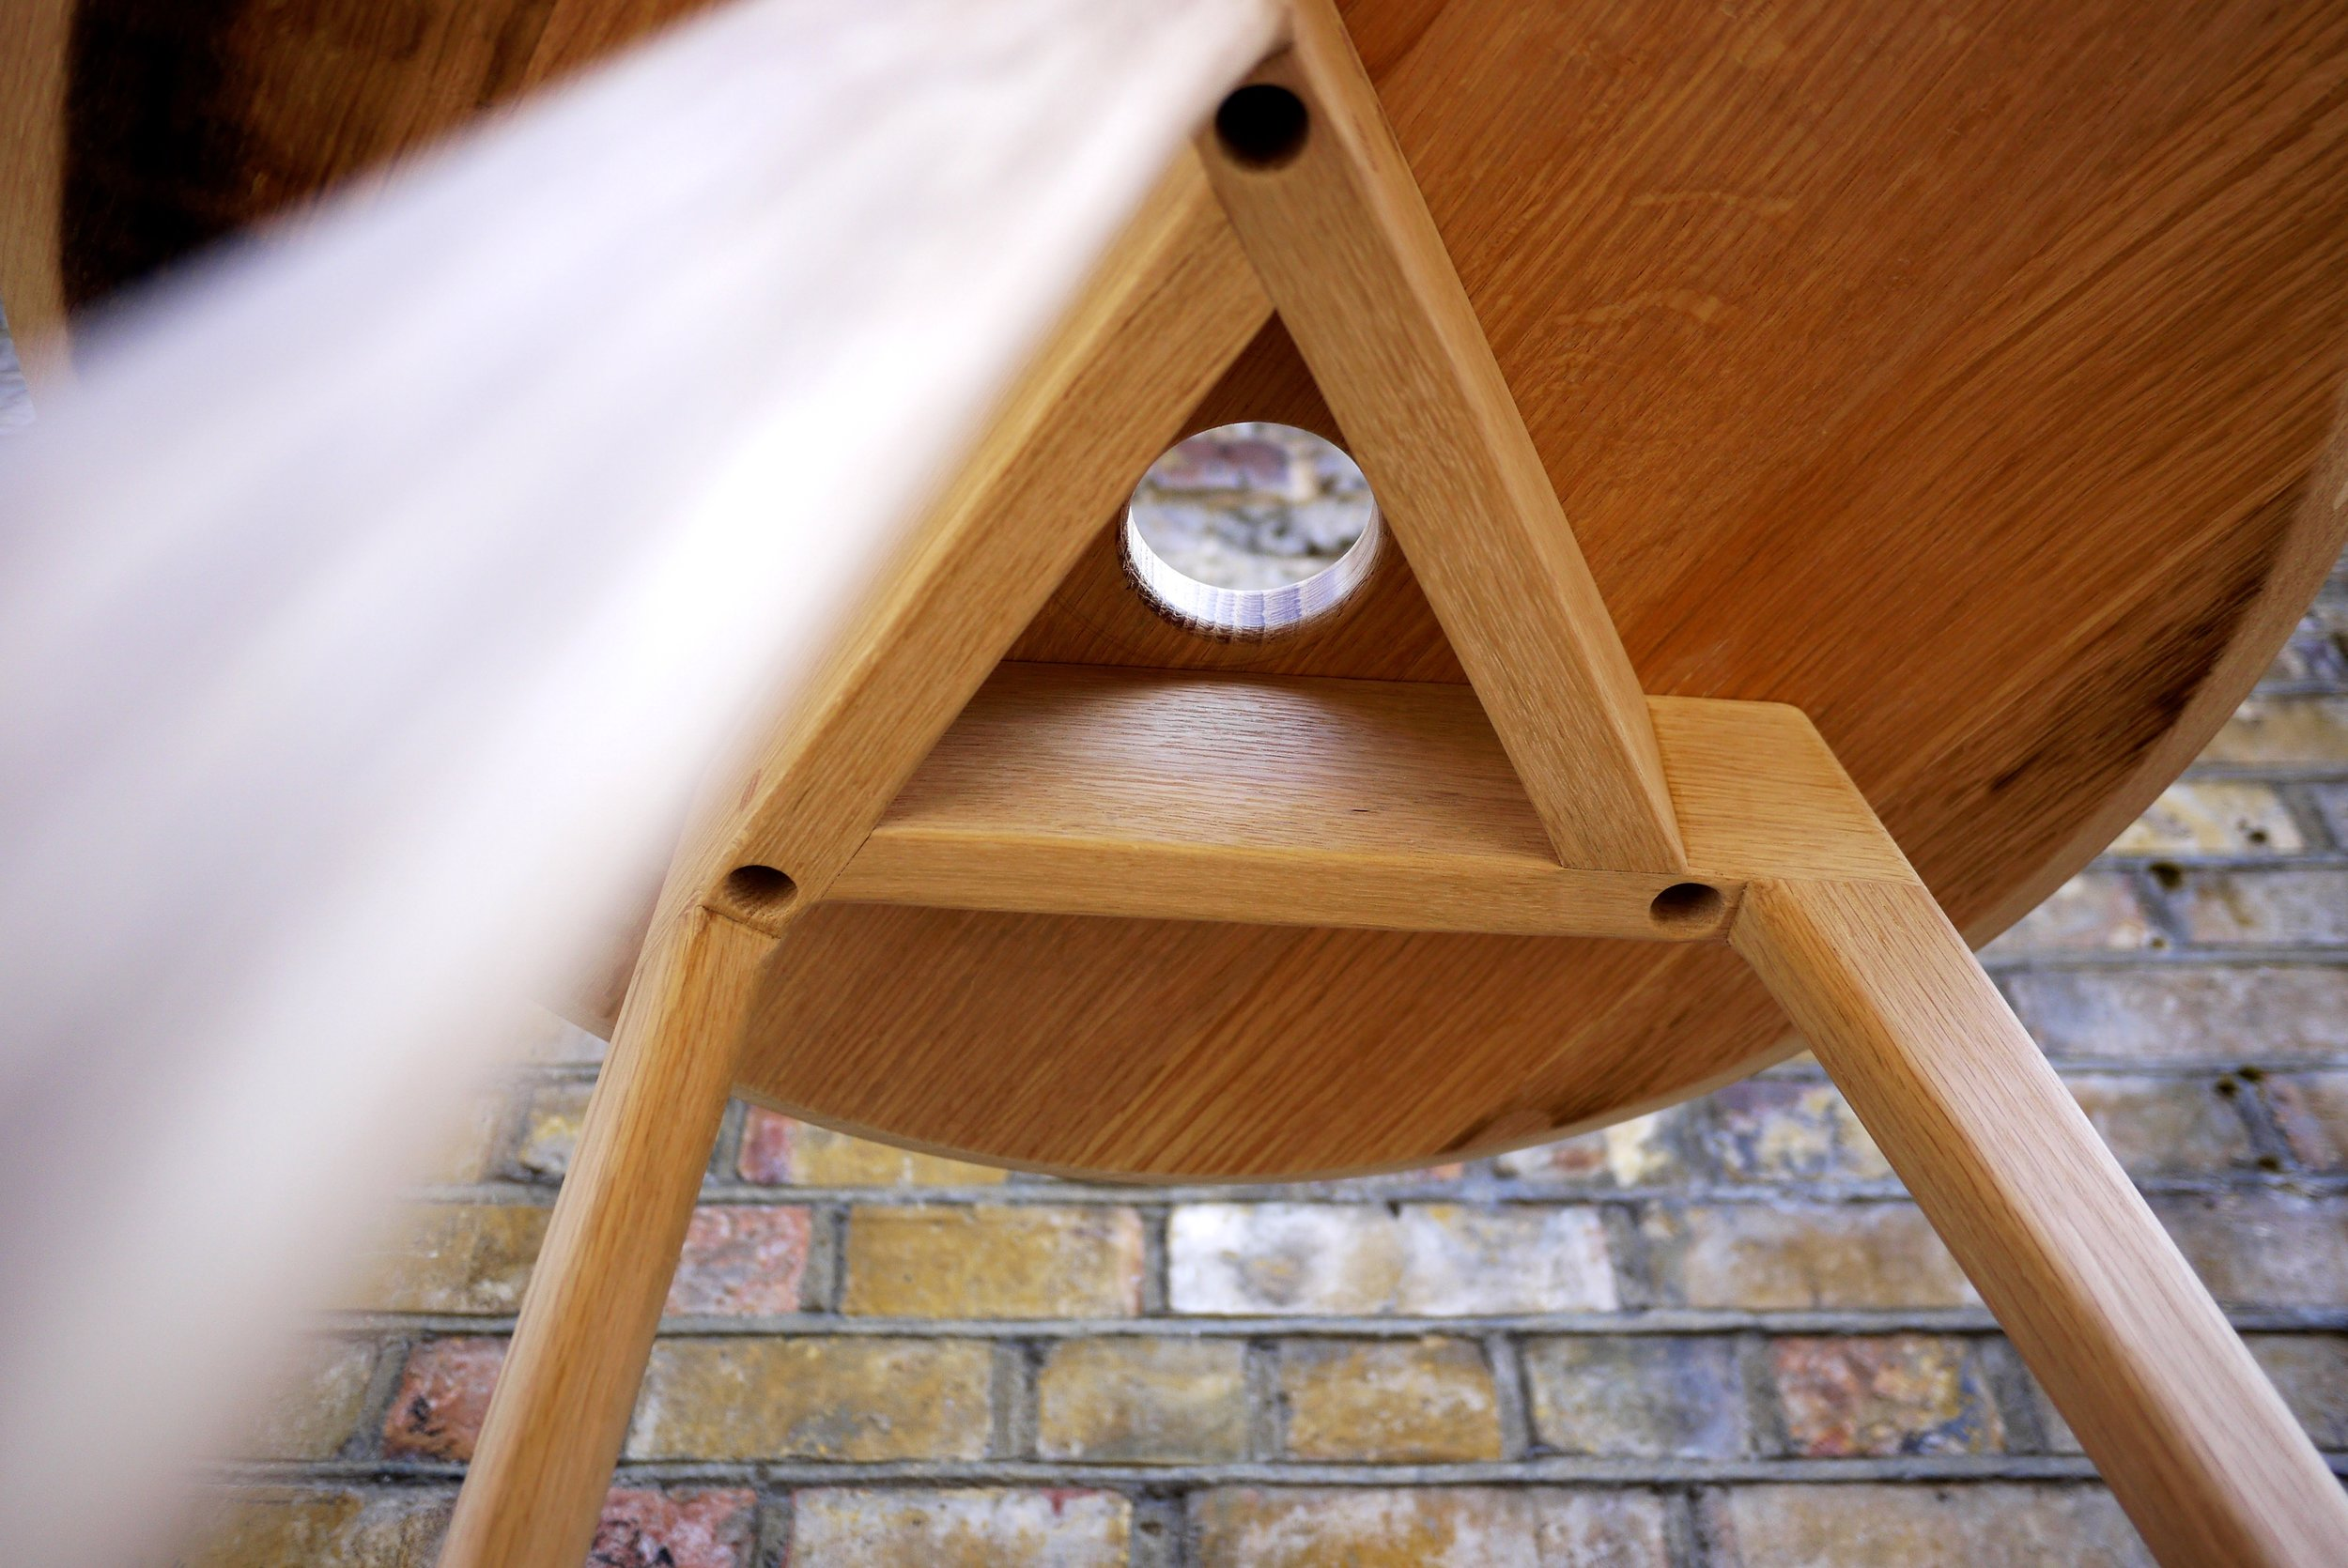 The bung hole allows for one-handed carry but was off centre so an interesting structure was developed around it.